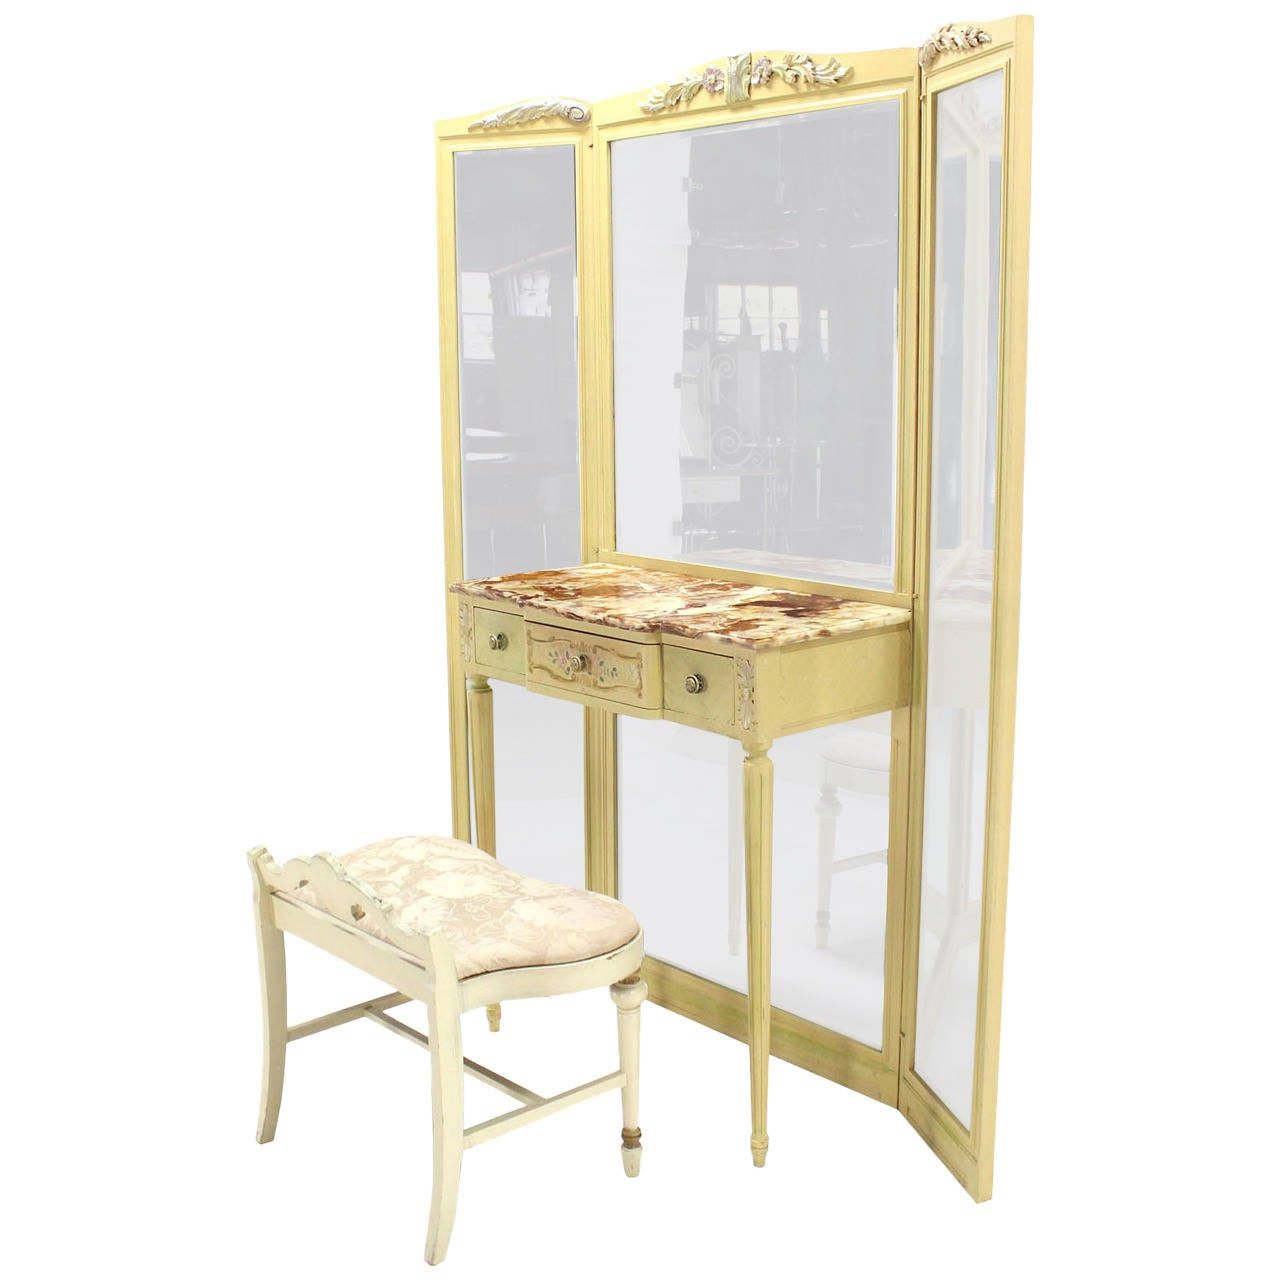 Tri Fold Mirror Vanity With Onyx Top And Bench For Sale At 1stdibs